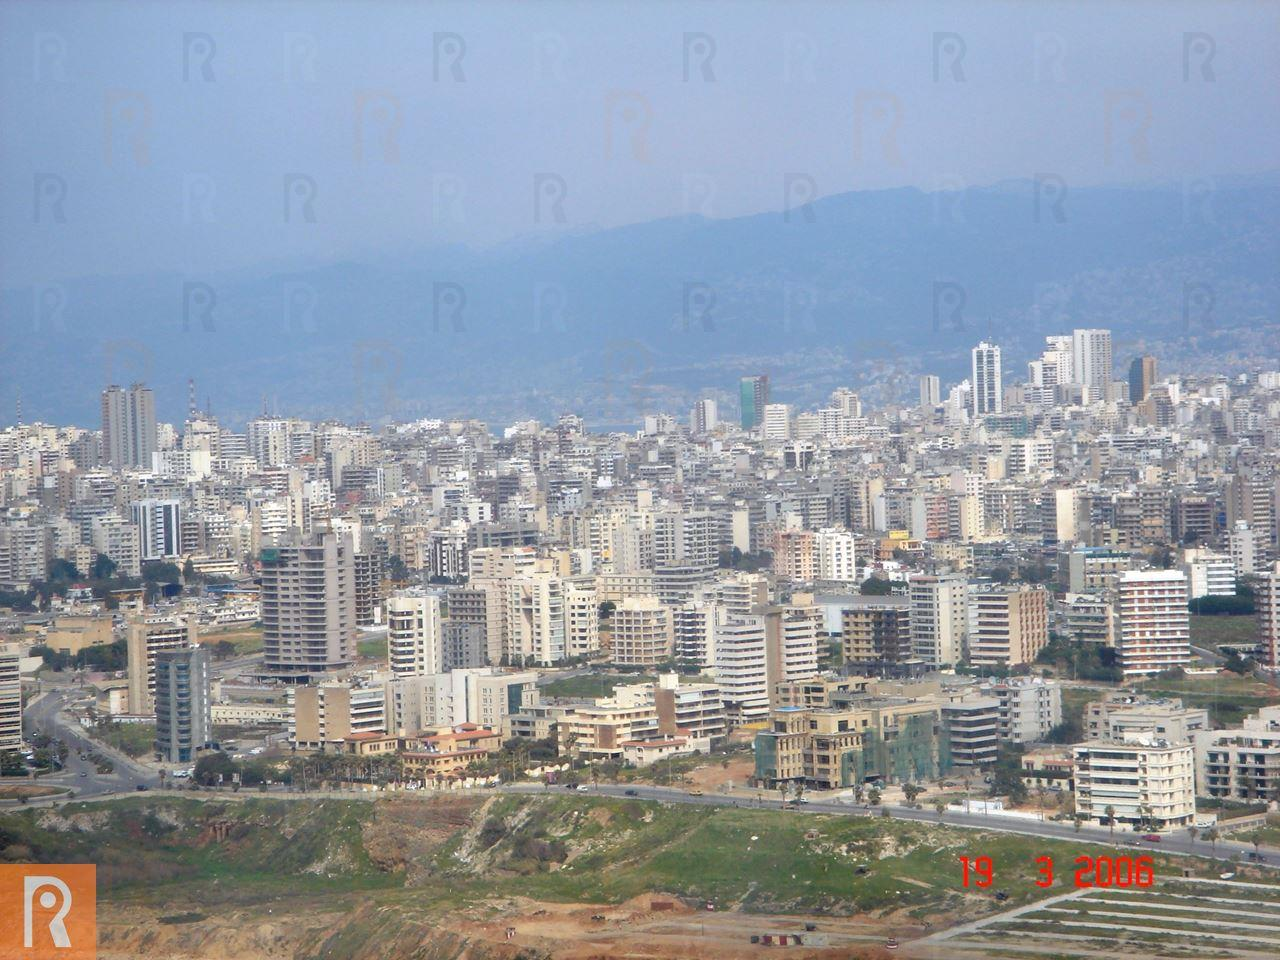 Photos of Beirut from the plane in 2006